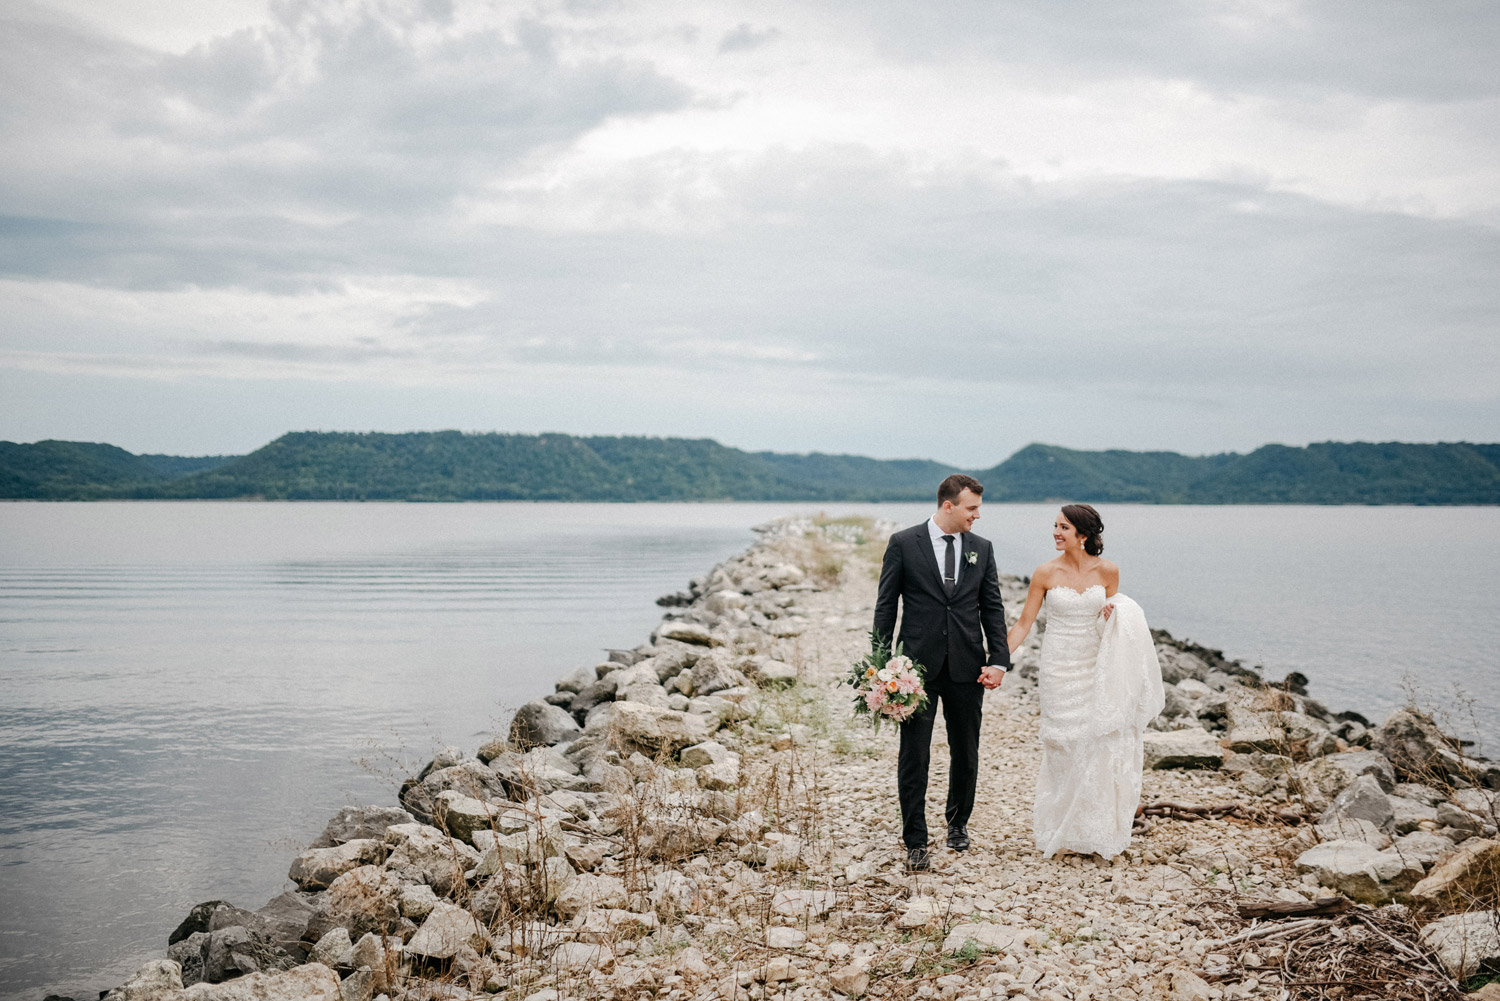 Bride and Groom Portraits on Lake Pepin by geneoh photography